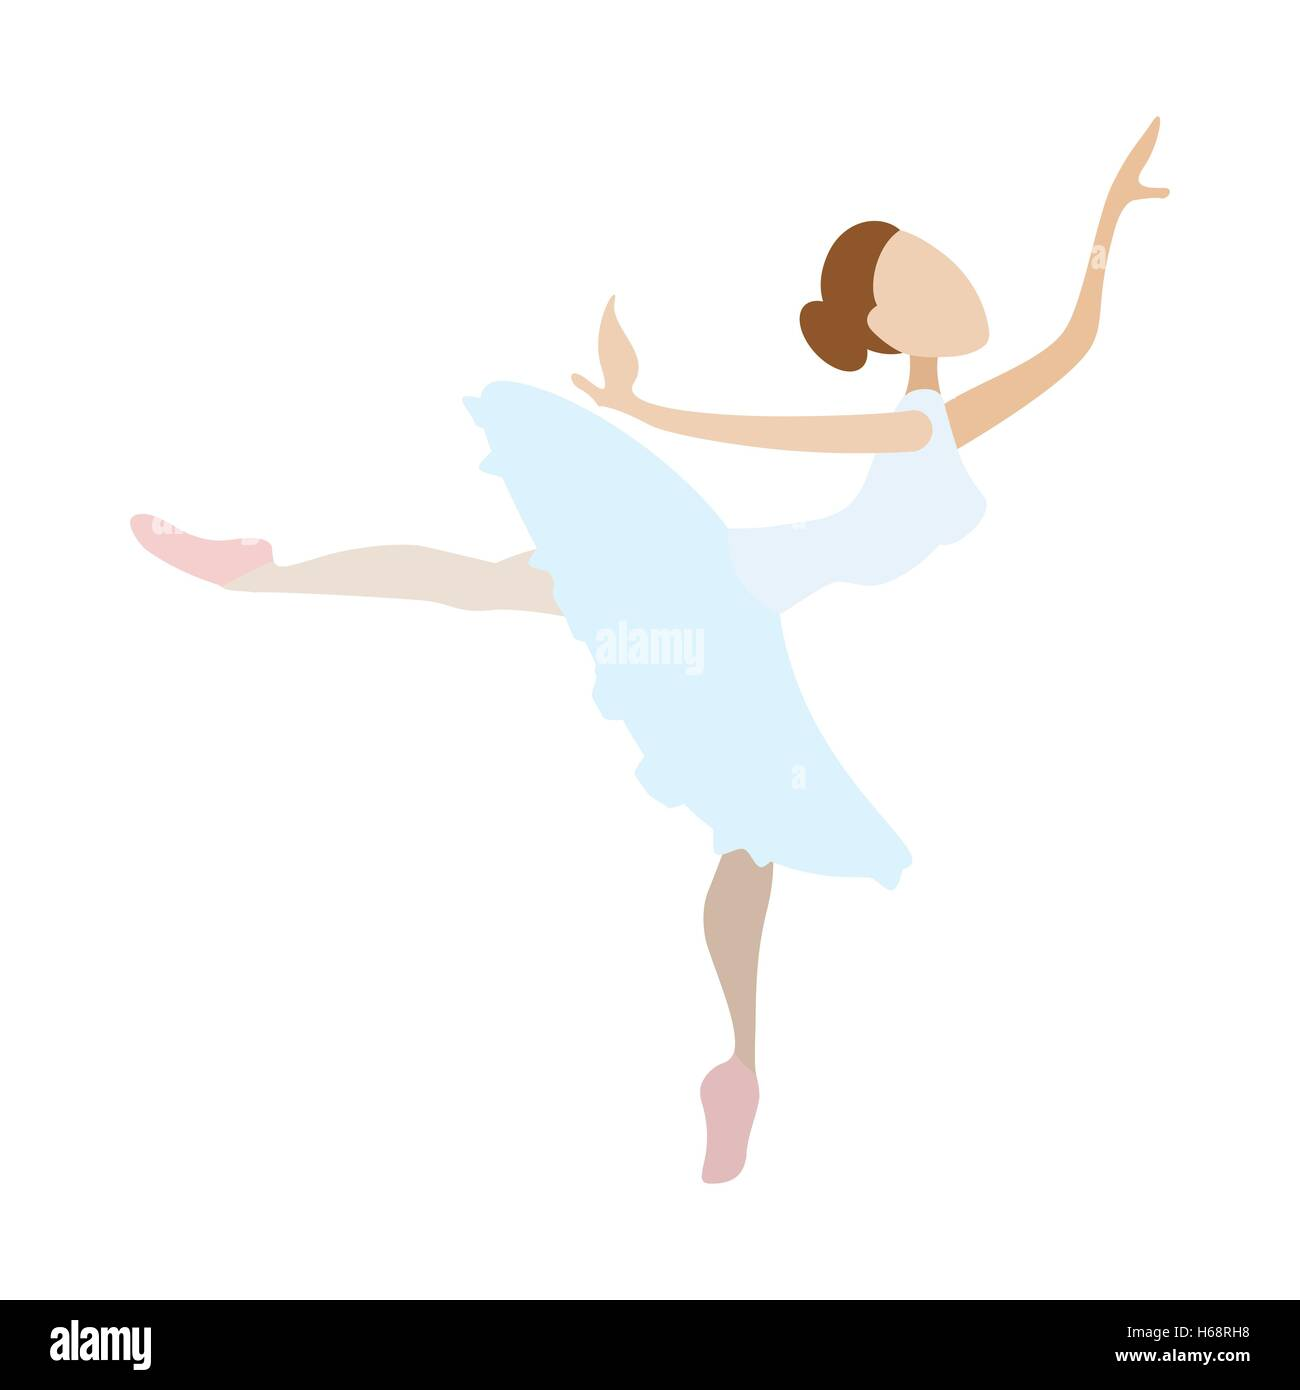 Cartoon Girl Dancing High Resolution Stock Photography And Images Alamy